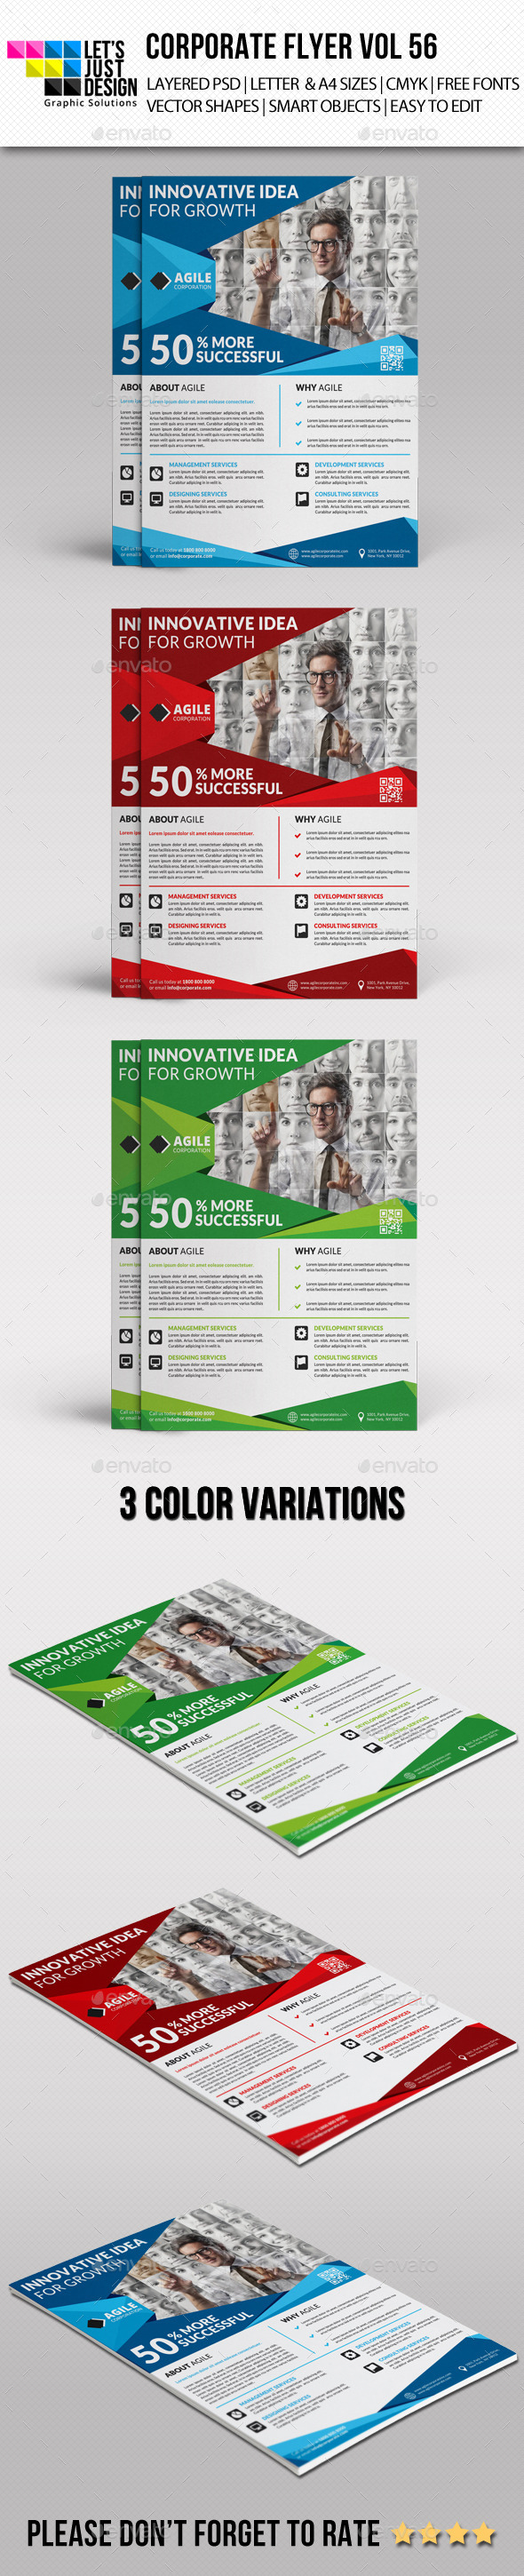 A4 Corporate Flyer Template Vol 56 - Corporate Flyers